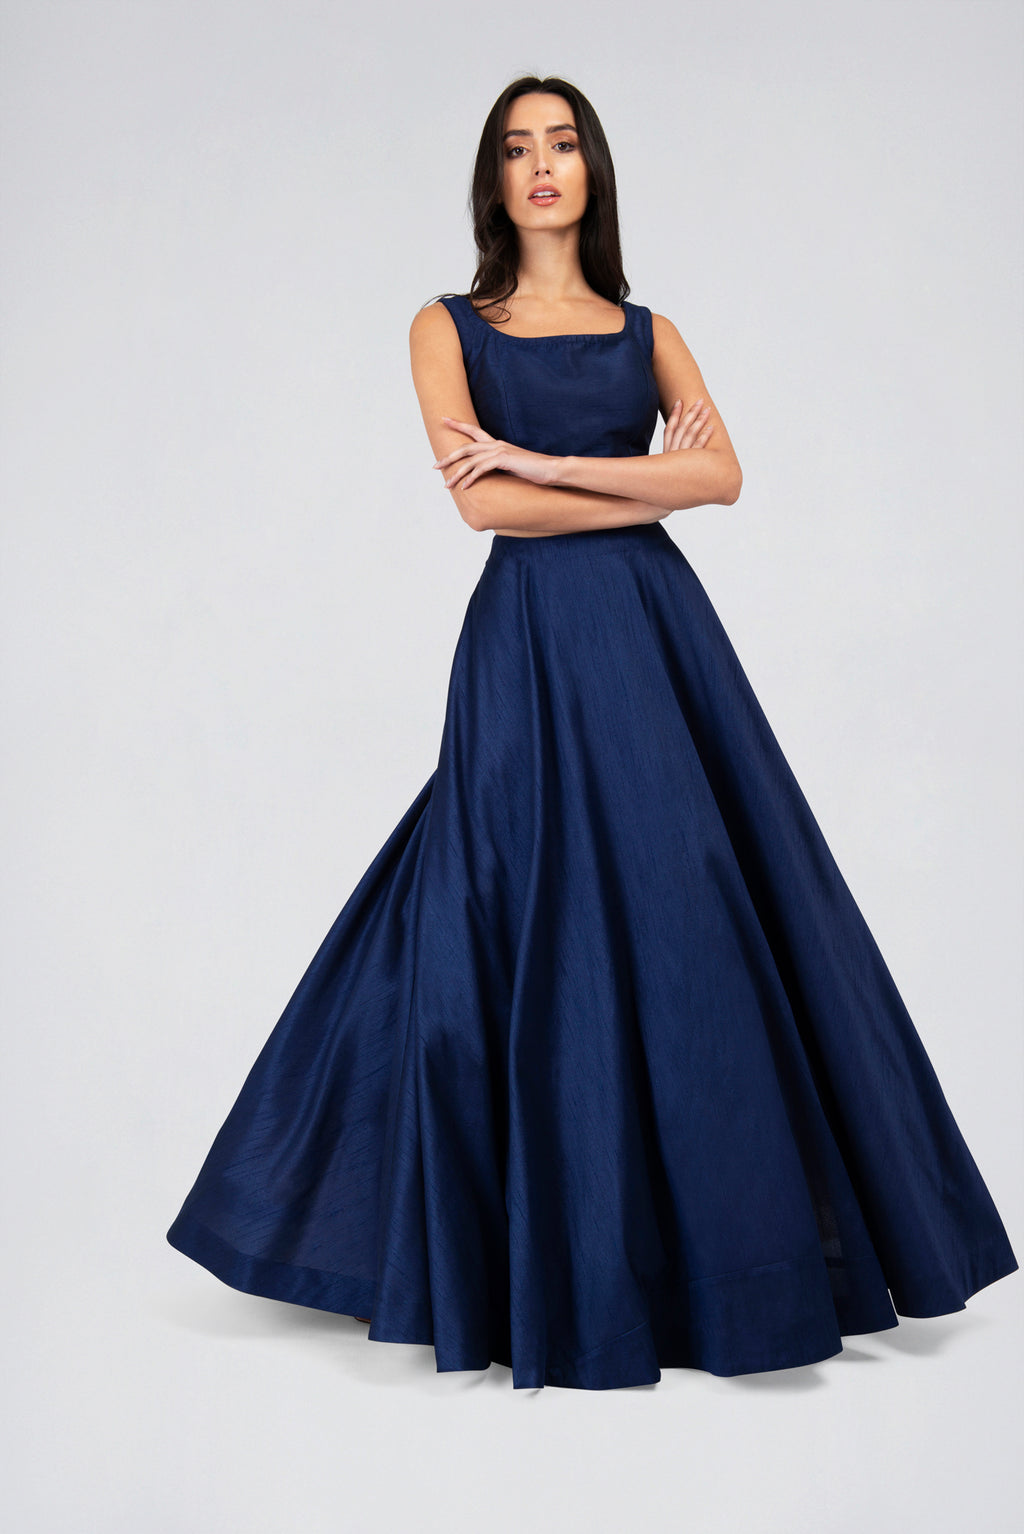 Navy Blue Sleeveless Blouse and Round flare Skirt Lehenga Set | Designer Studio London - ds-london.myshopify.com